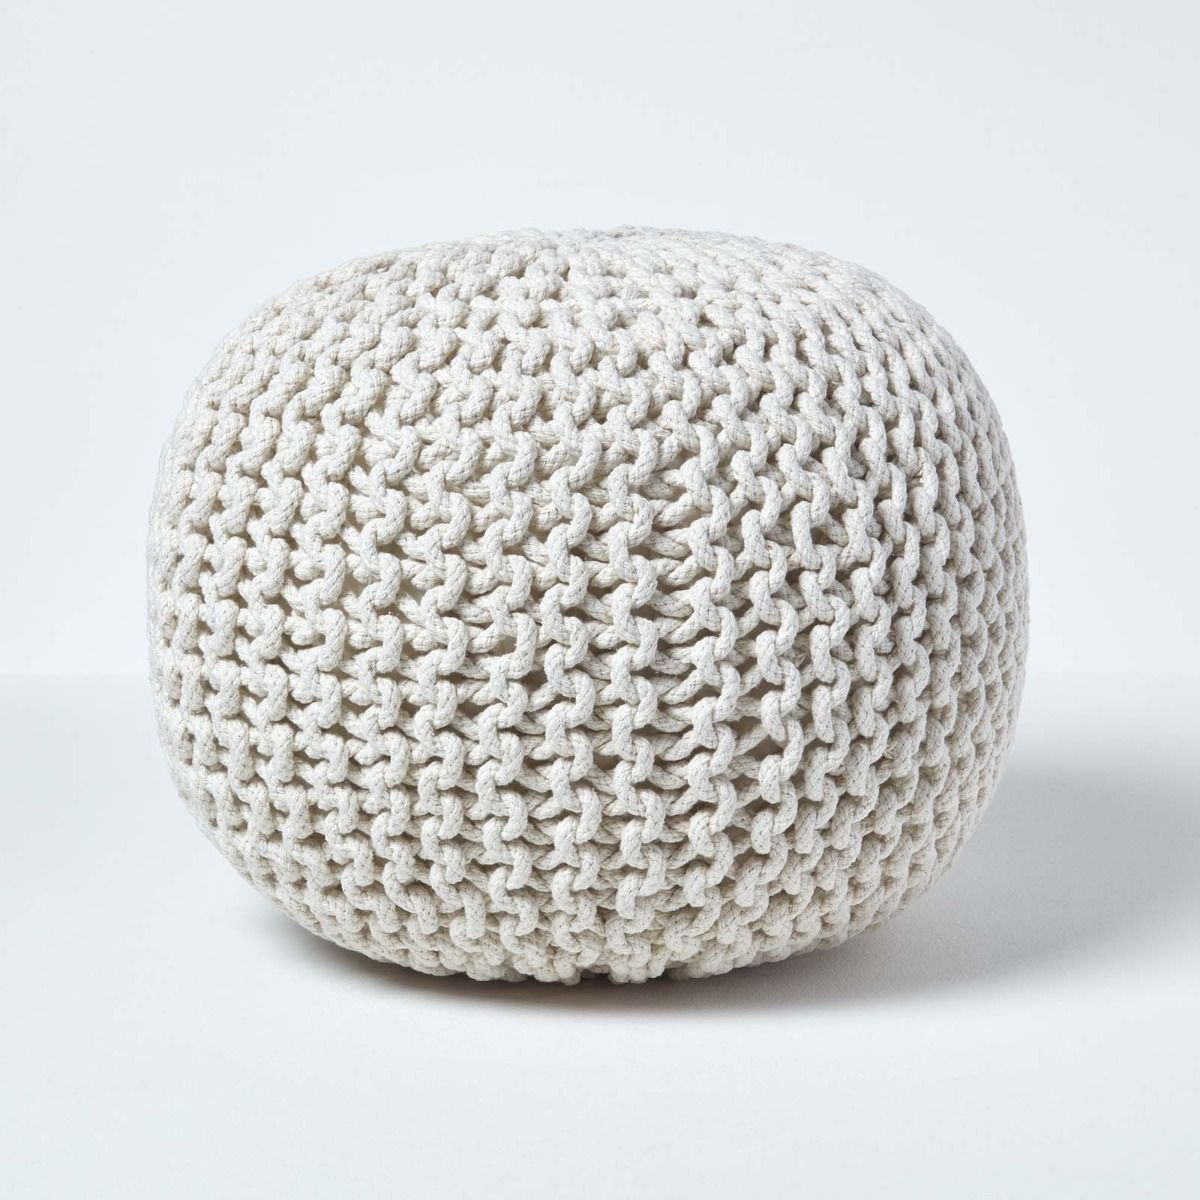 The Knitted Pouffe Trend In 2020 Knitted Pouffe Pouffe Knitted Pouf